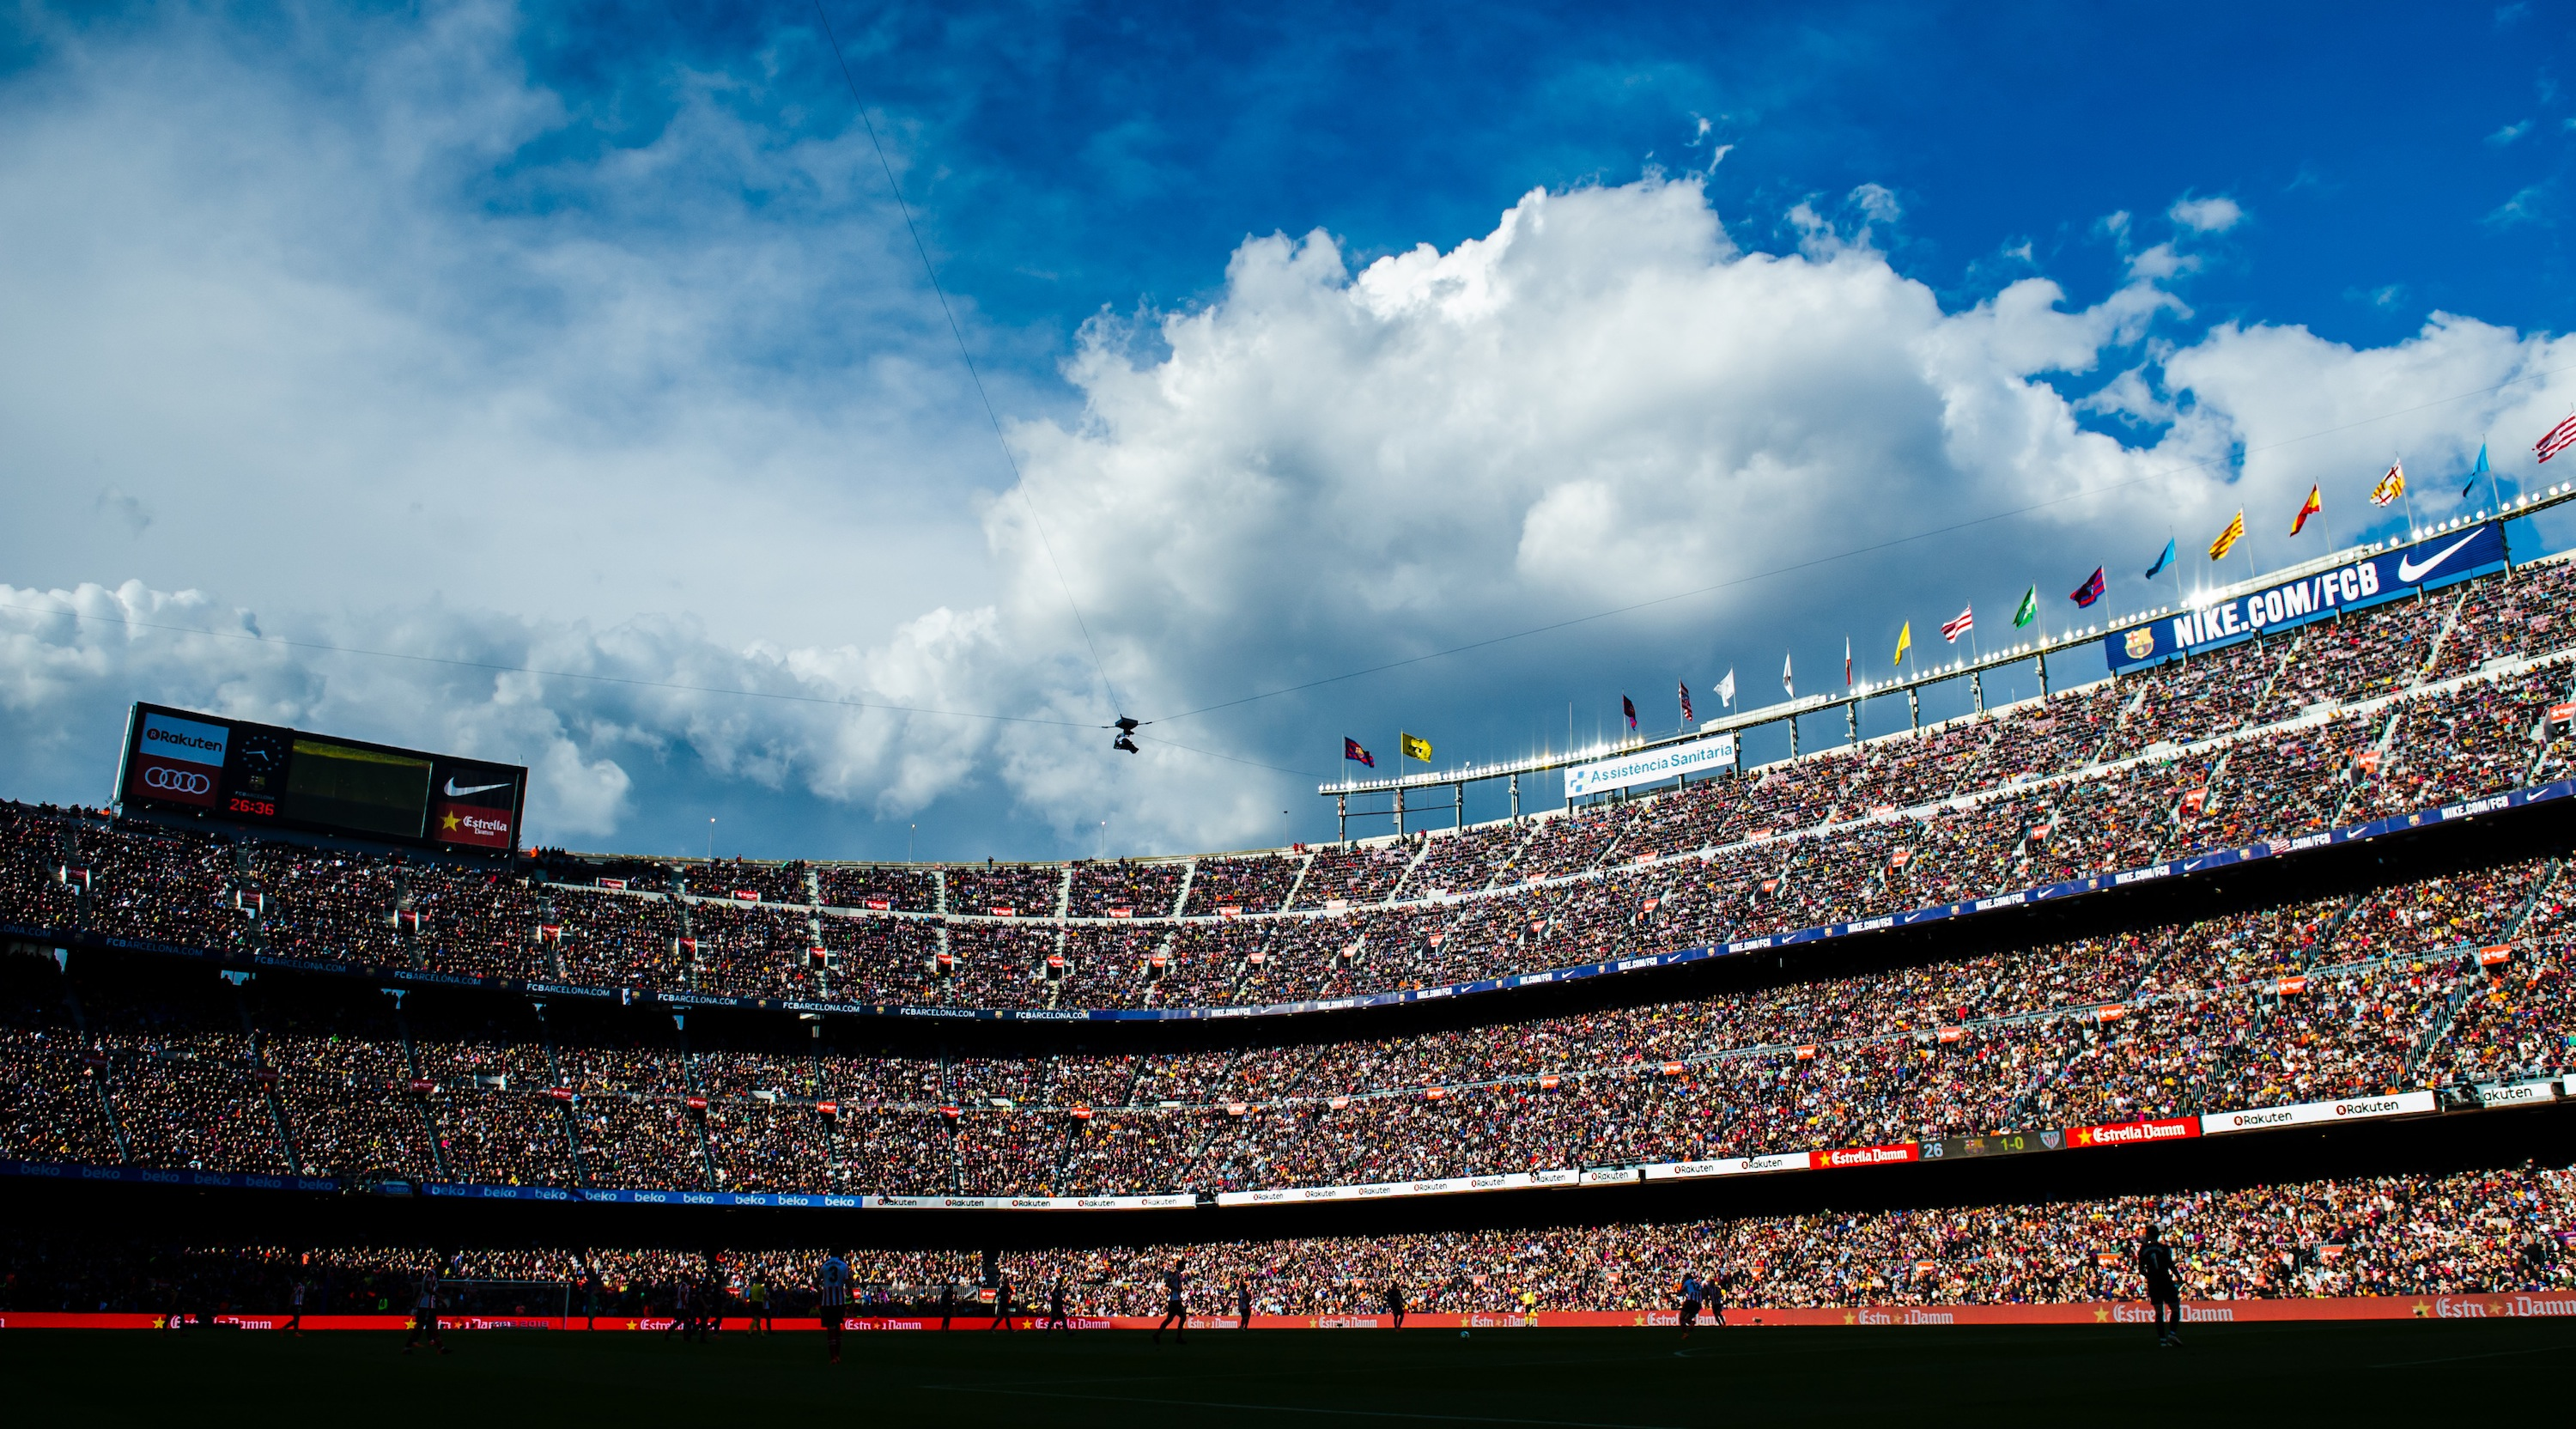 BARCELONA, SPAIN - MARCH 18: A view of the Camp Nou stadium during the La Liga match between Barcelona and Athletic Club at Camp Nou on March 18, 2018 in Barcelona, Spain. (Photo by Alex Caparros/Getty Images)